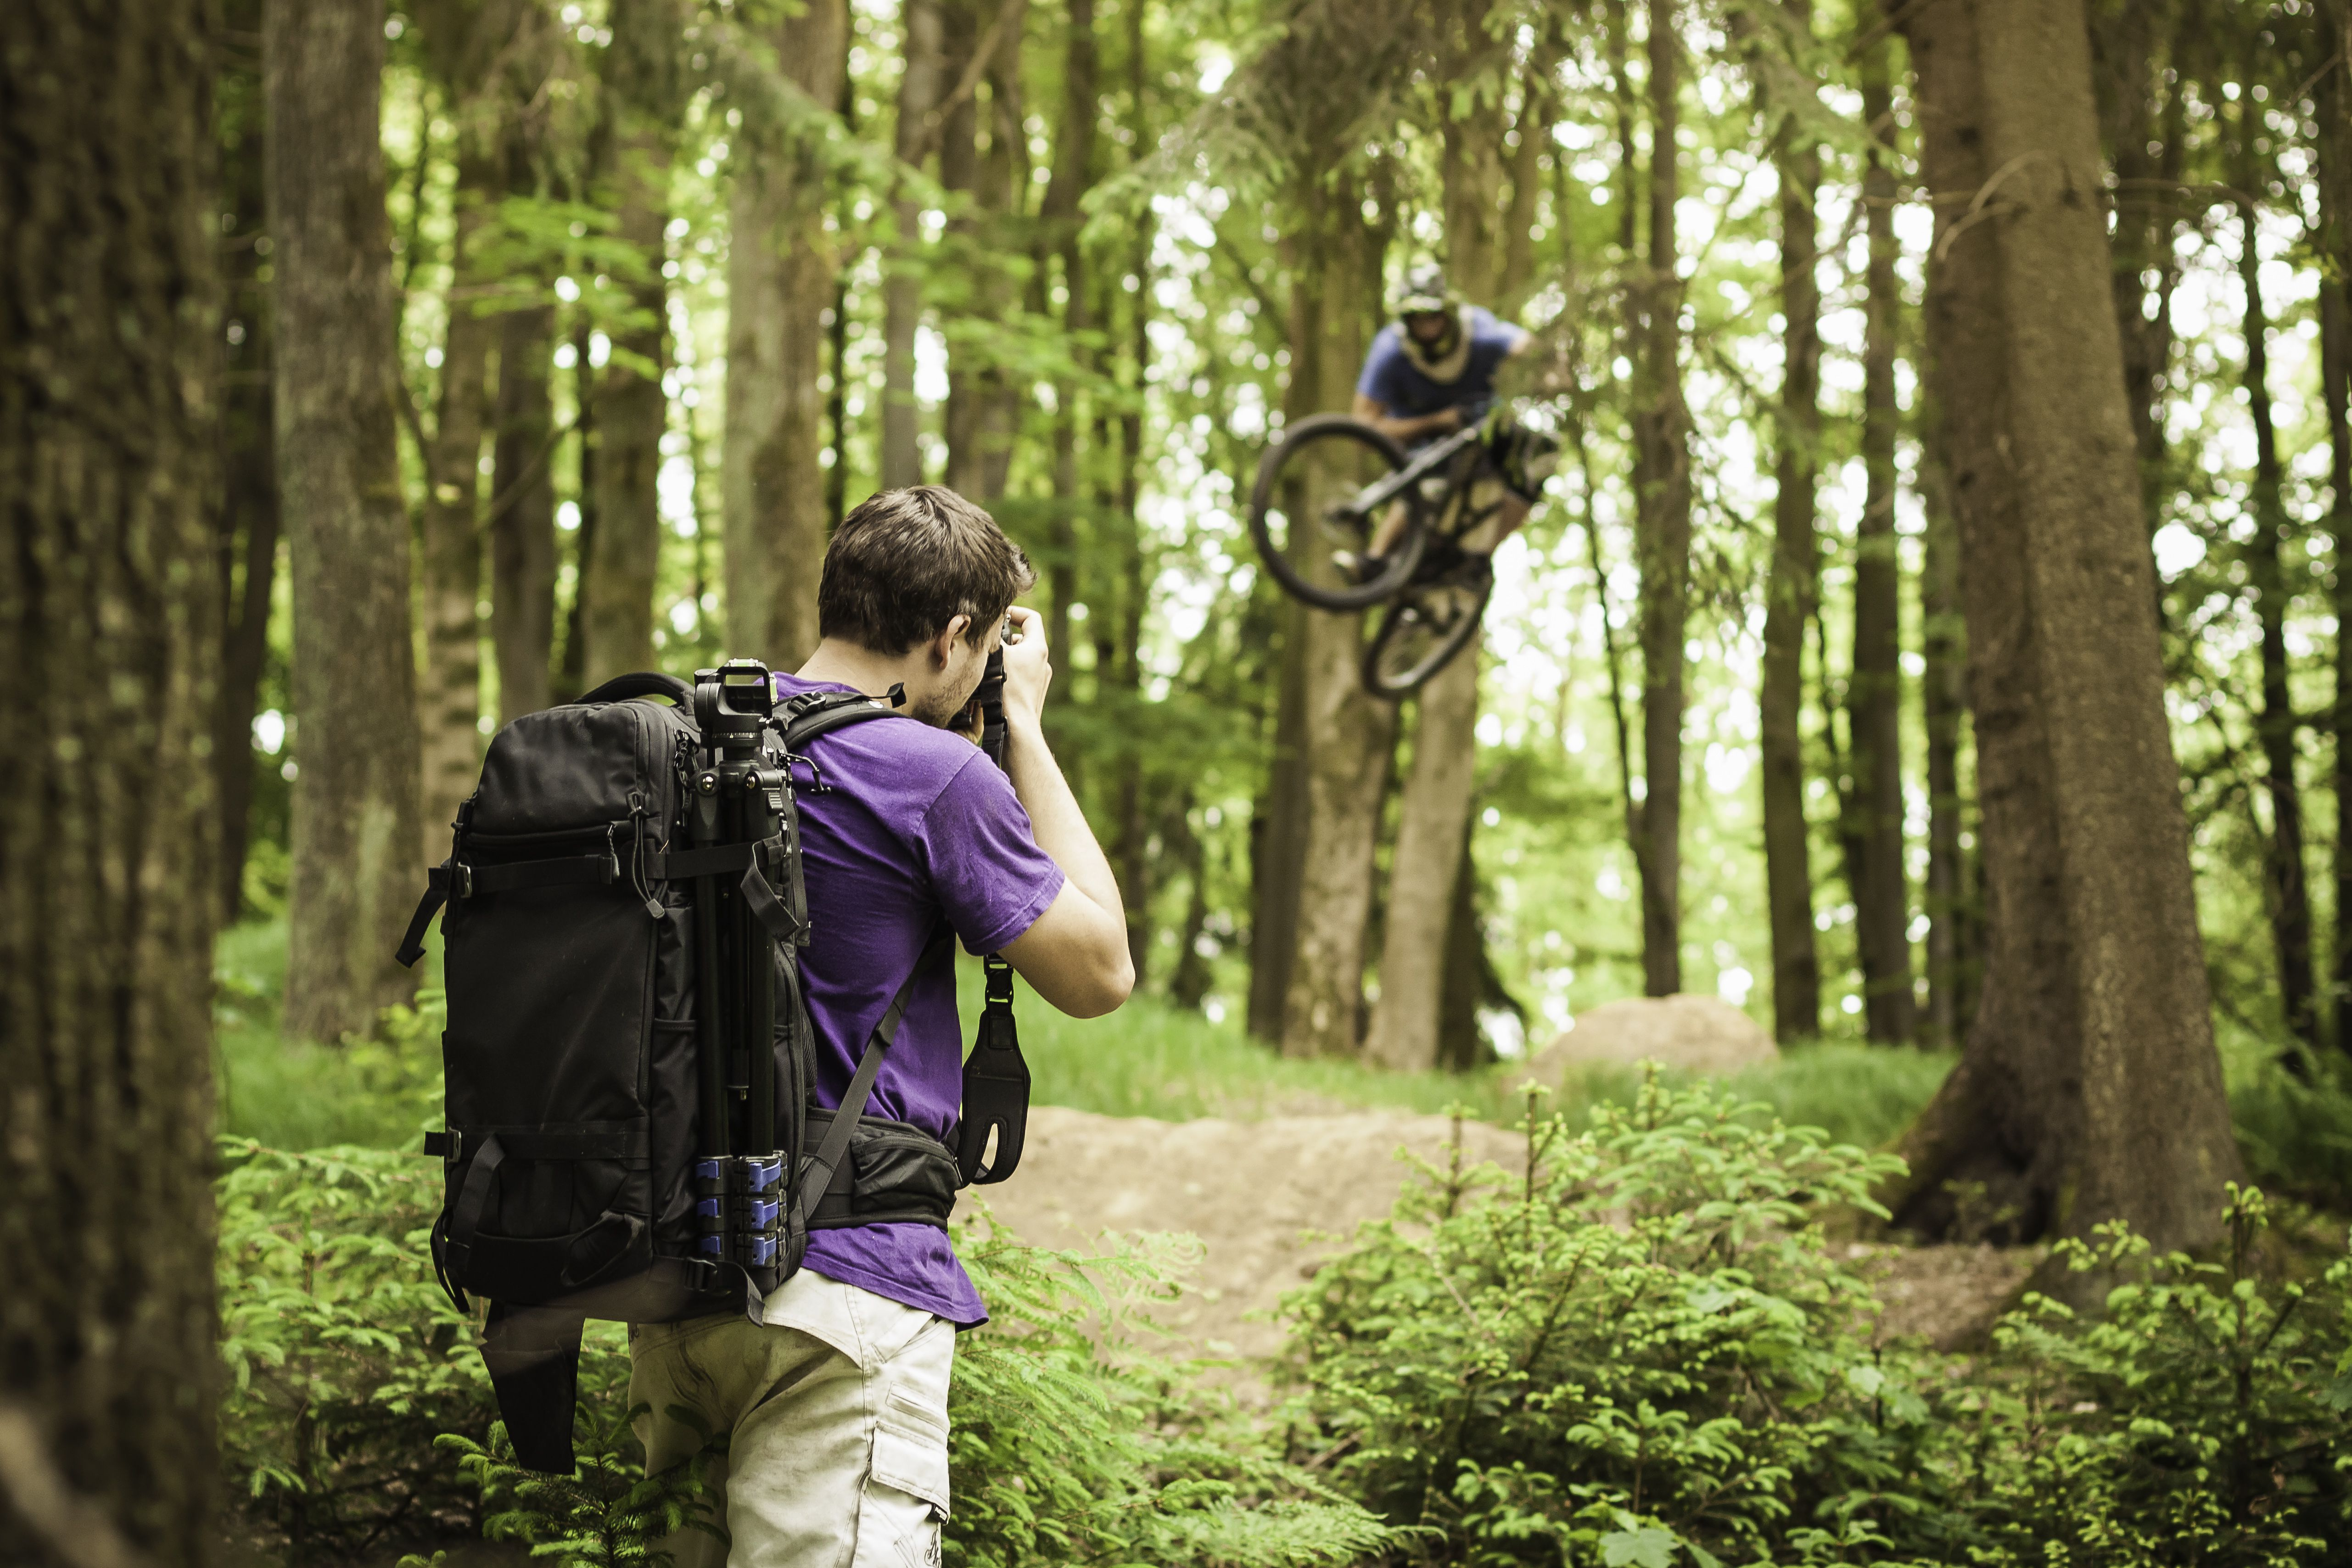 Photographer photographing mountain biker in forest